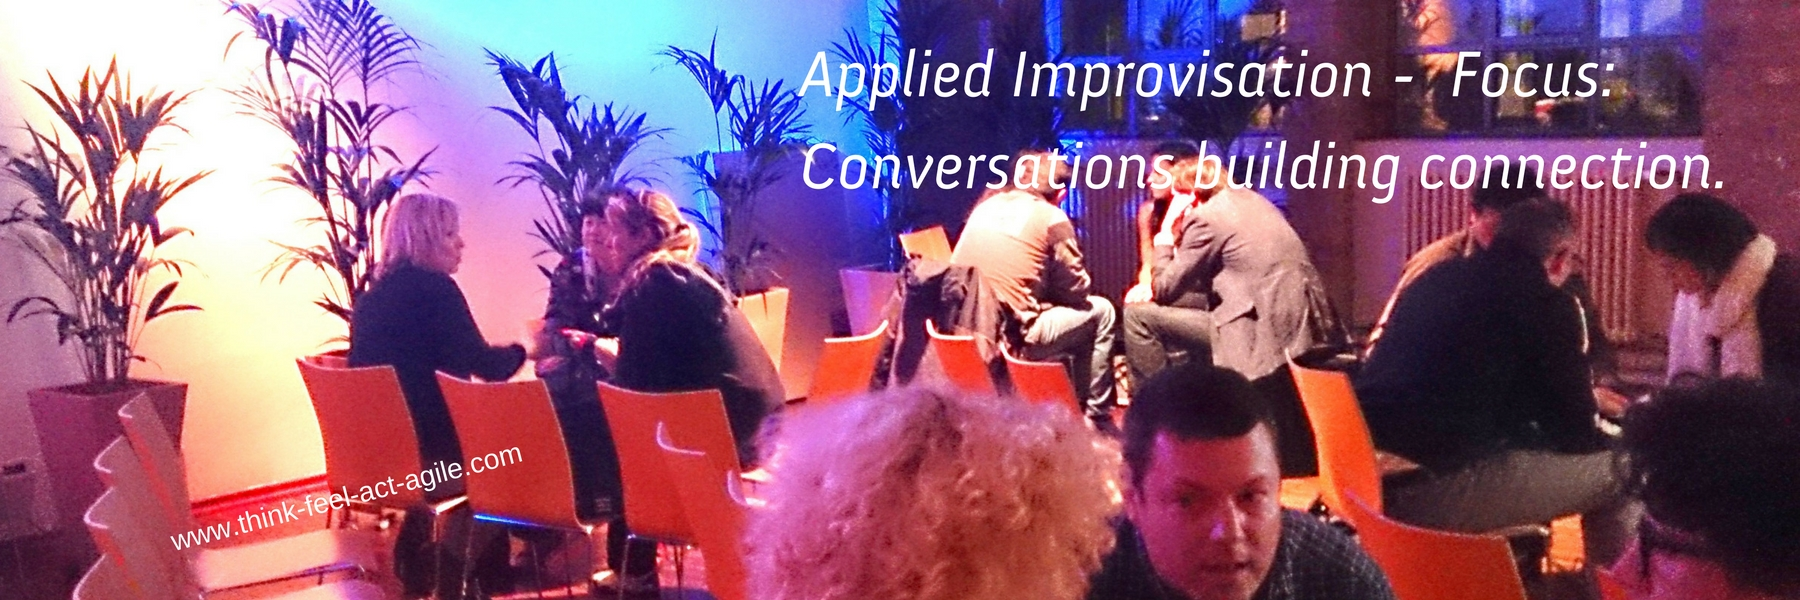 AIN-Conference_Applied Improv Conversation